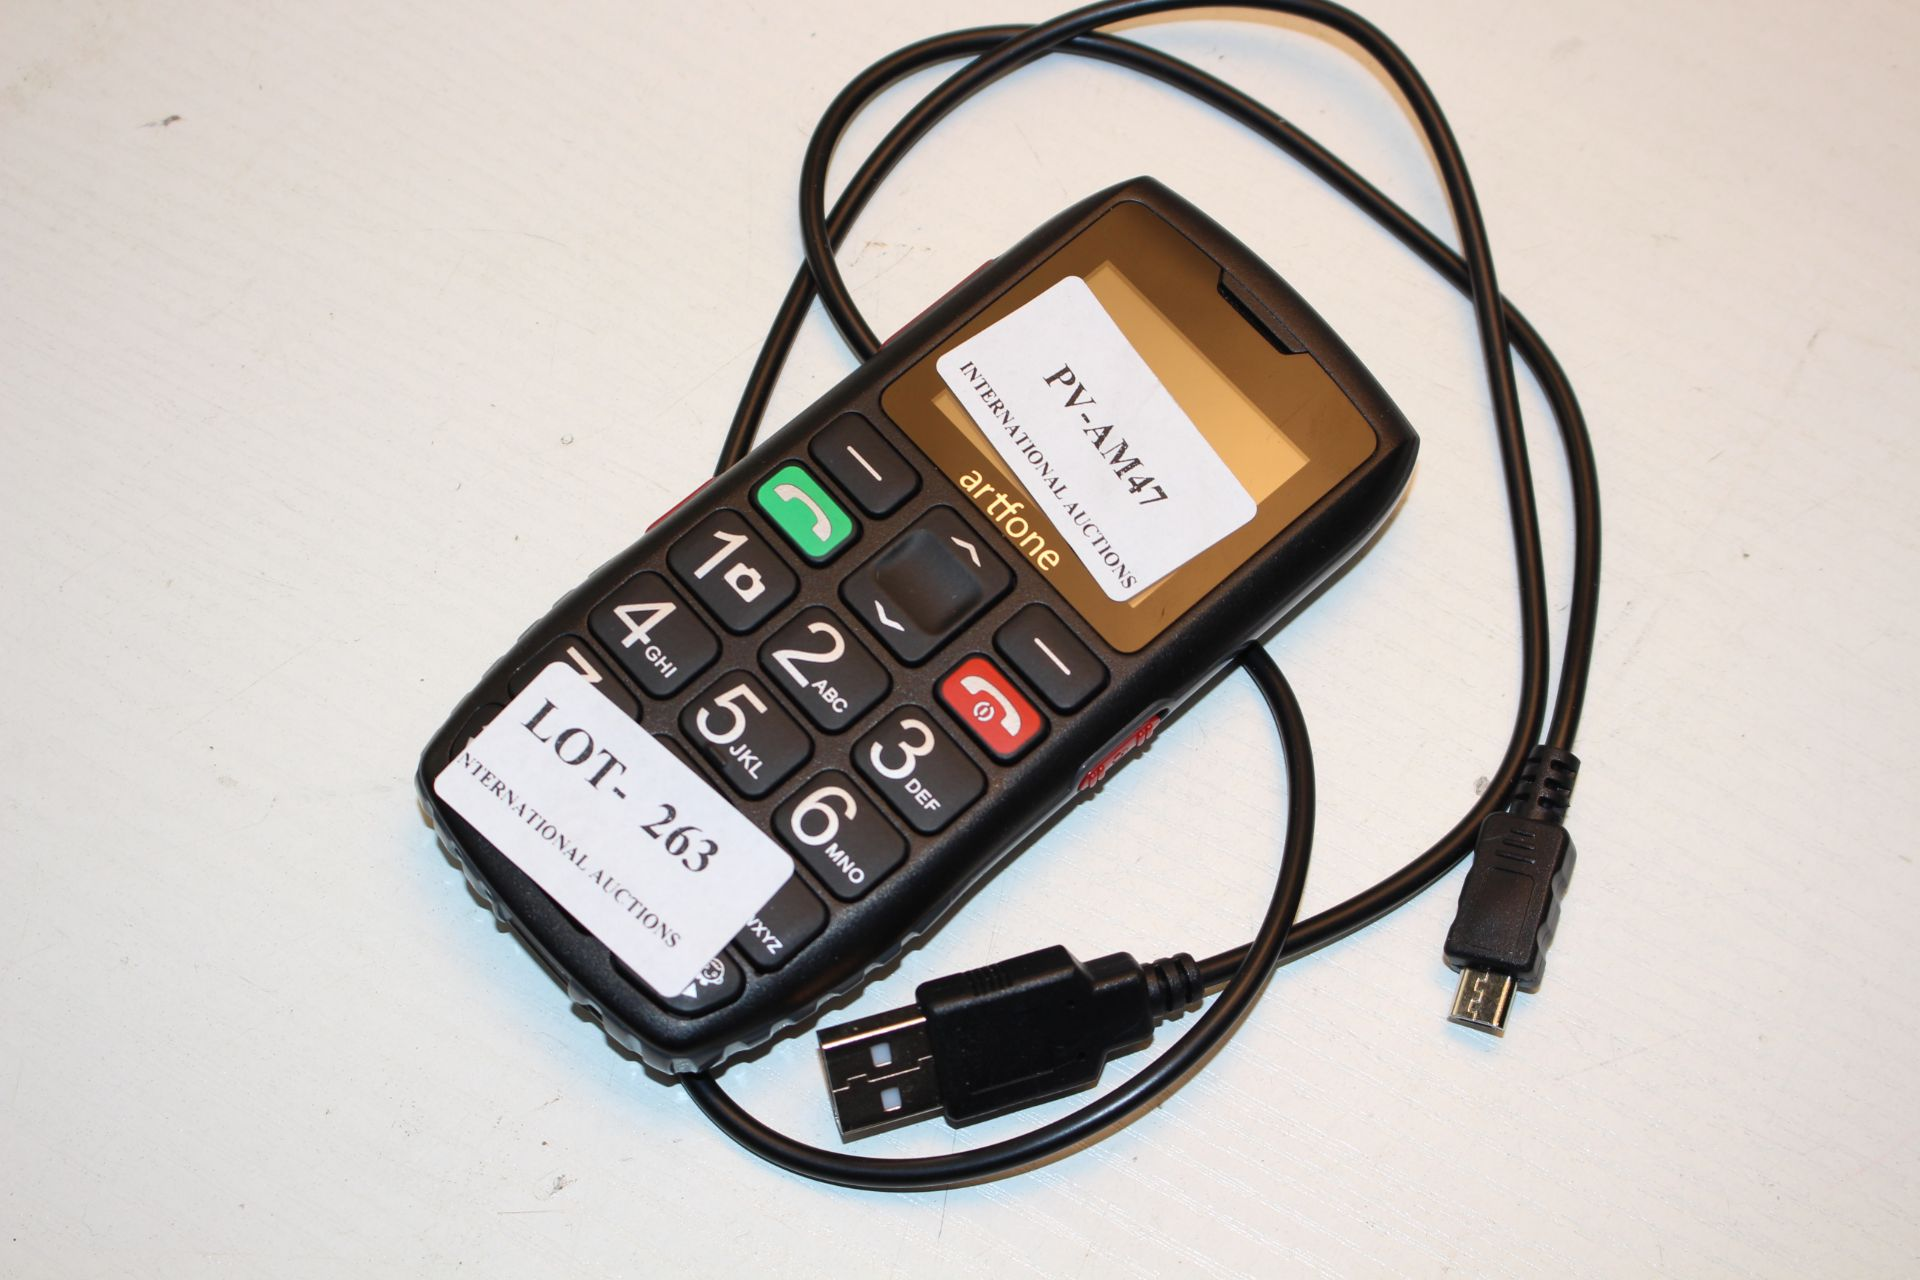 UNBOXED ARTFONE SENIOR SERIES MOBILECondition ReportAppraisal Available on Request- All Items are